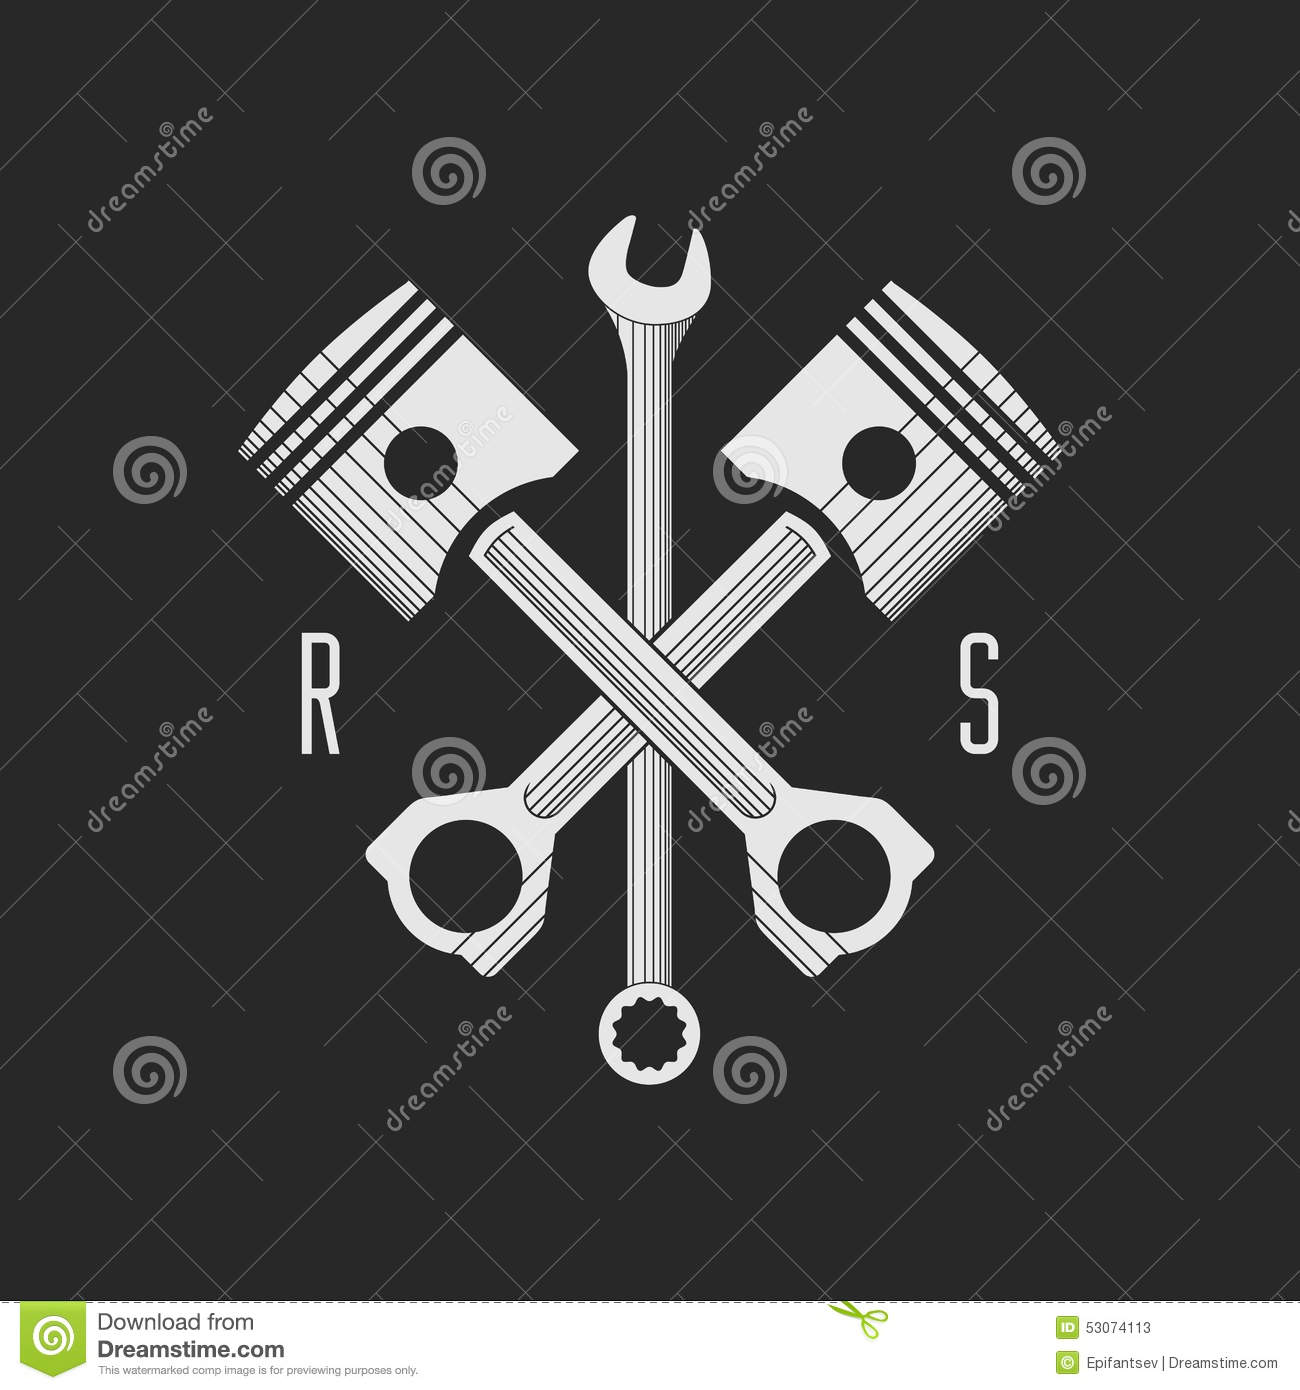 6 Etl Business Requirements Specification Template Reyri: Сar Or Bike Workshop Logo Template (concept). Vector